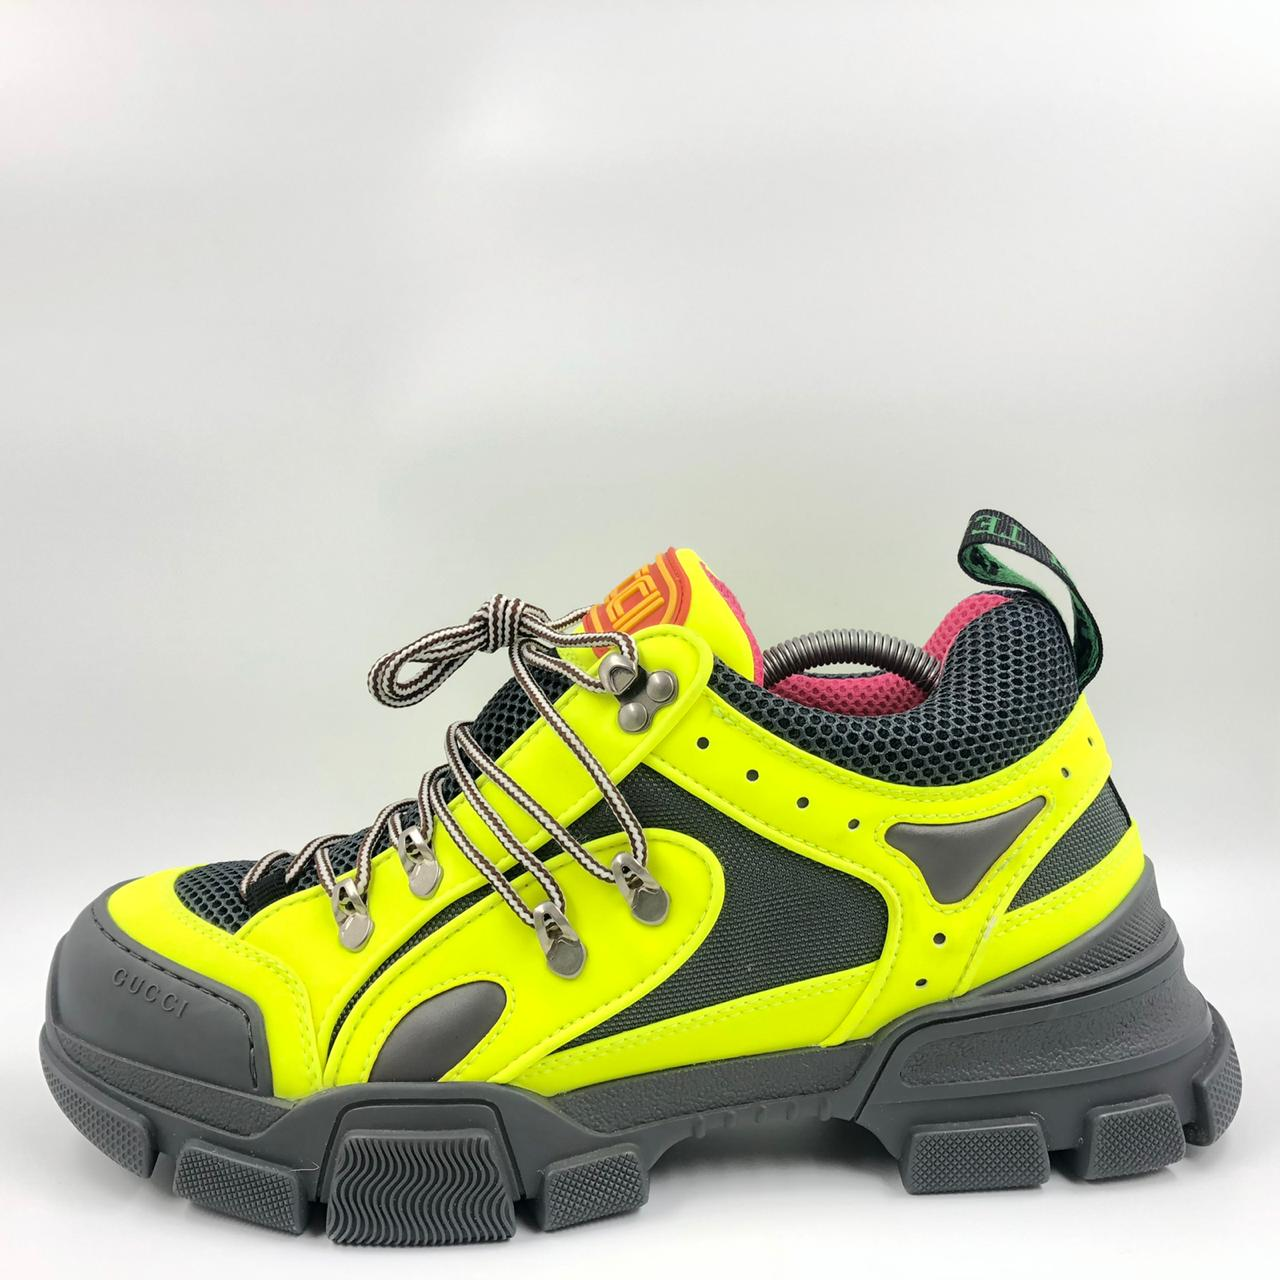 Gucci Flashtrek SEGA Reflective Yellow